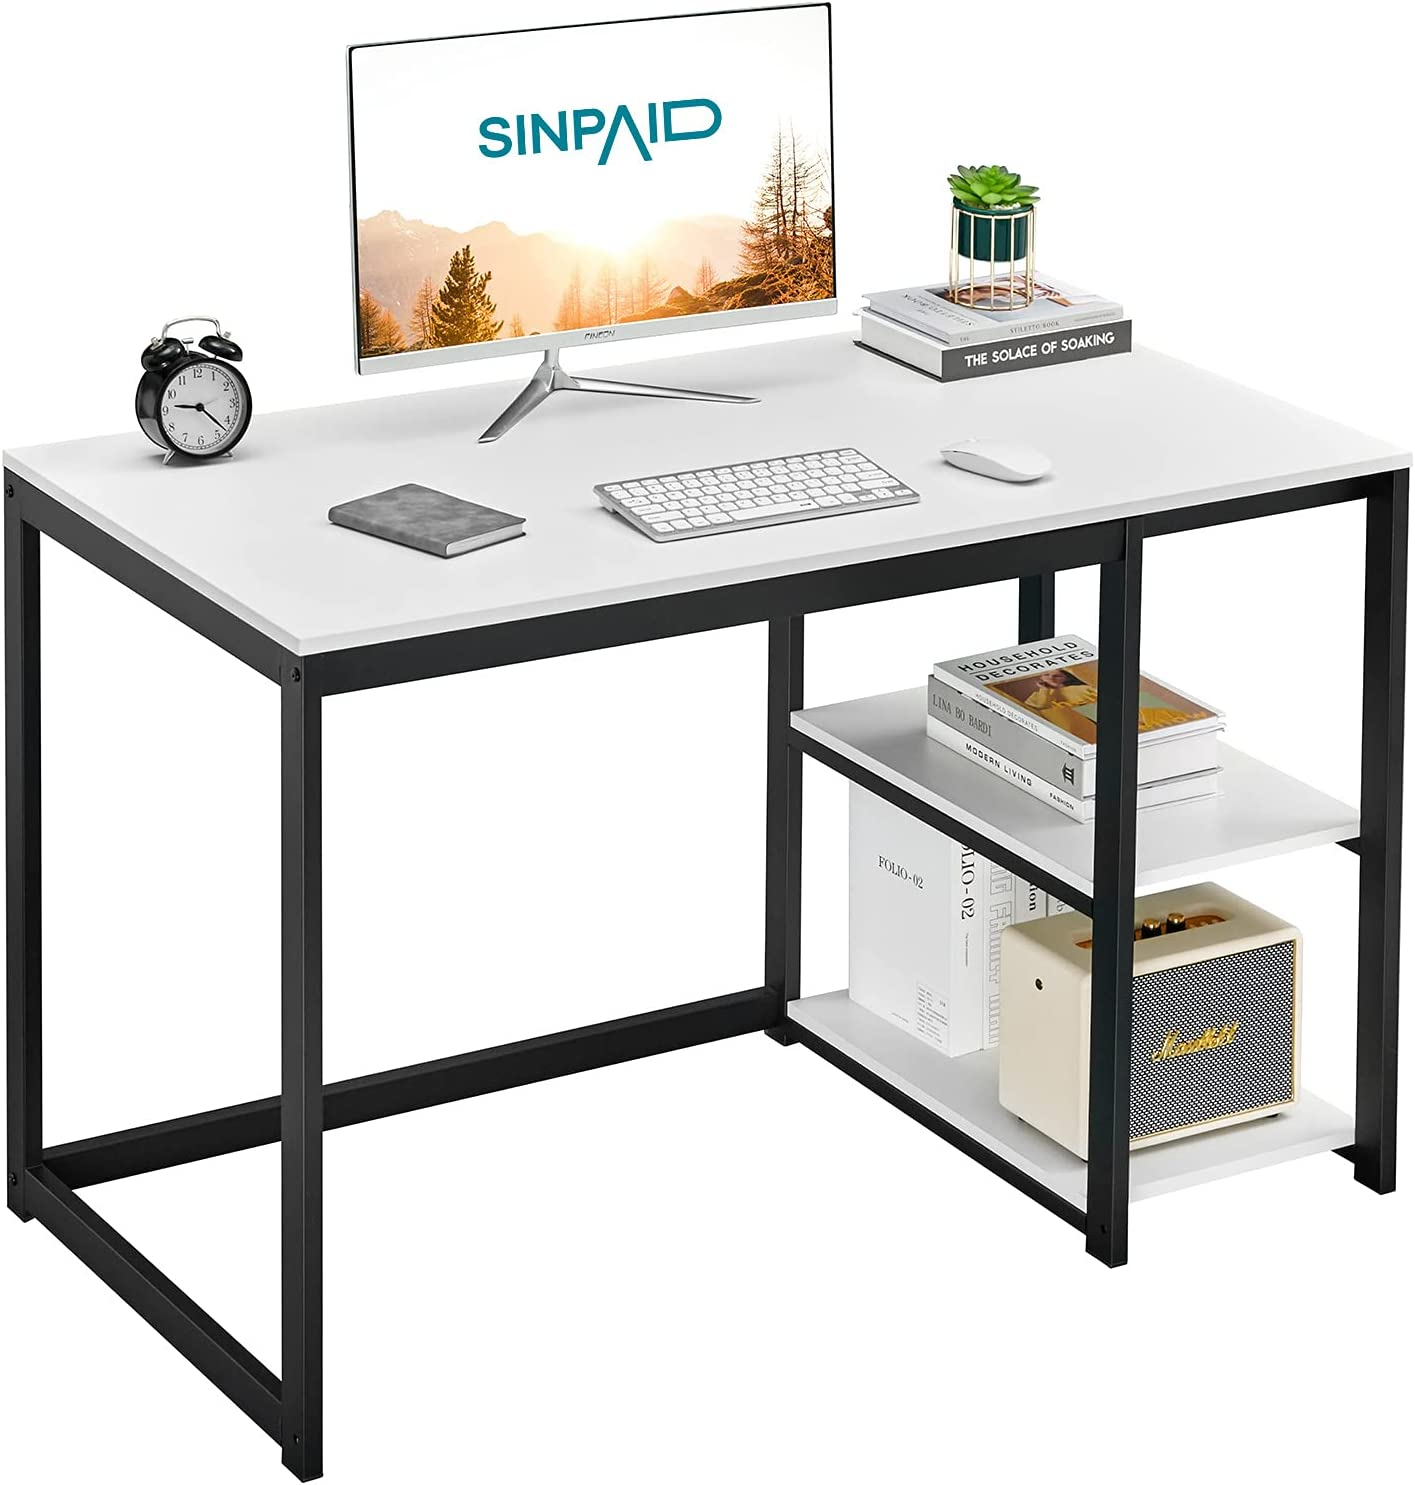 SINPAID Computer Desk 40 inches with 2-Tier Shelves Sturdy Home Office Desk with Large Storage Space Modern Gaming Desk Study Writing Laptop Table, White Desk